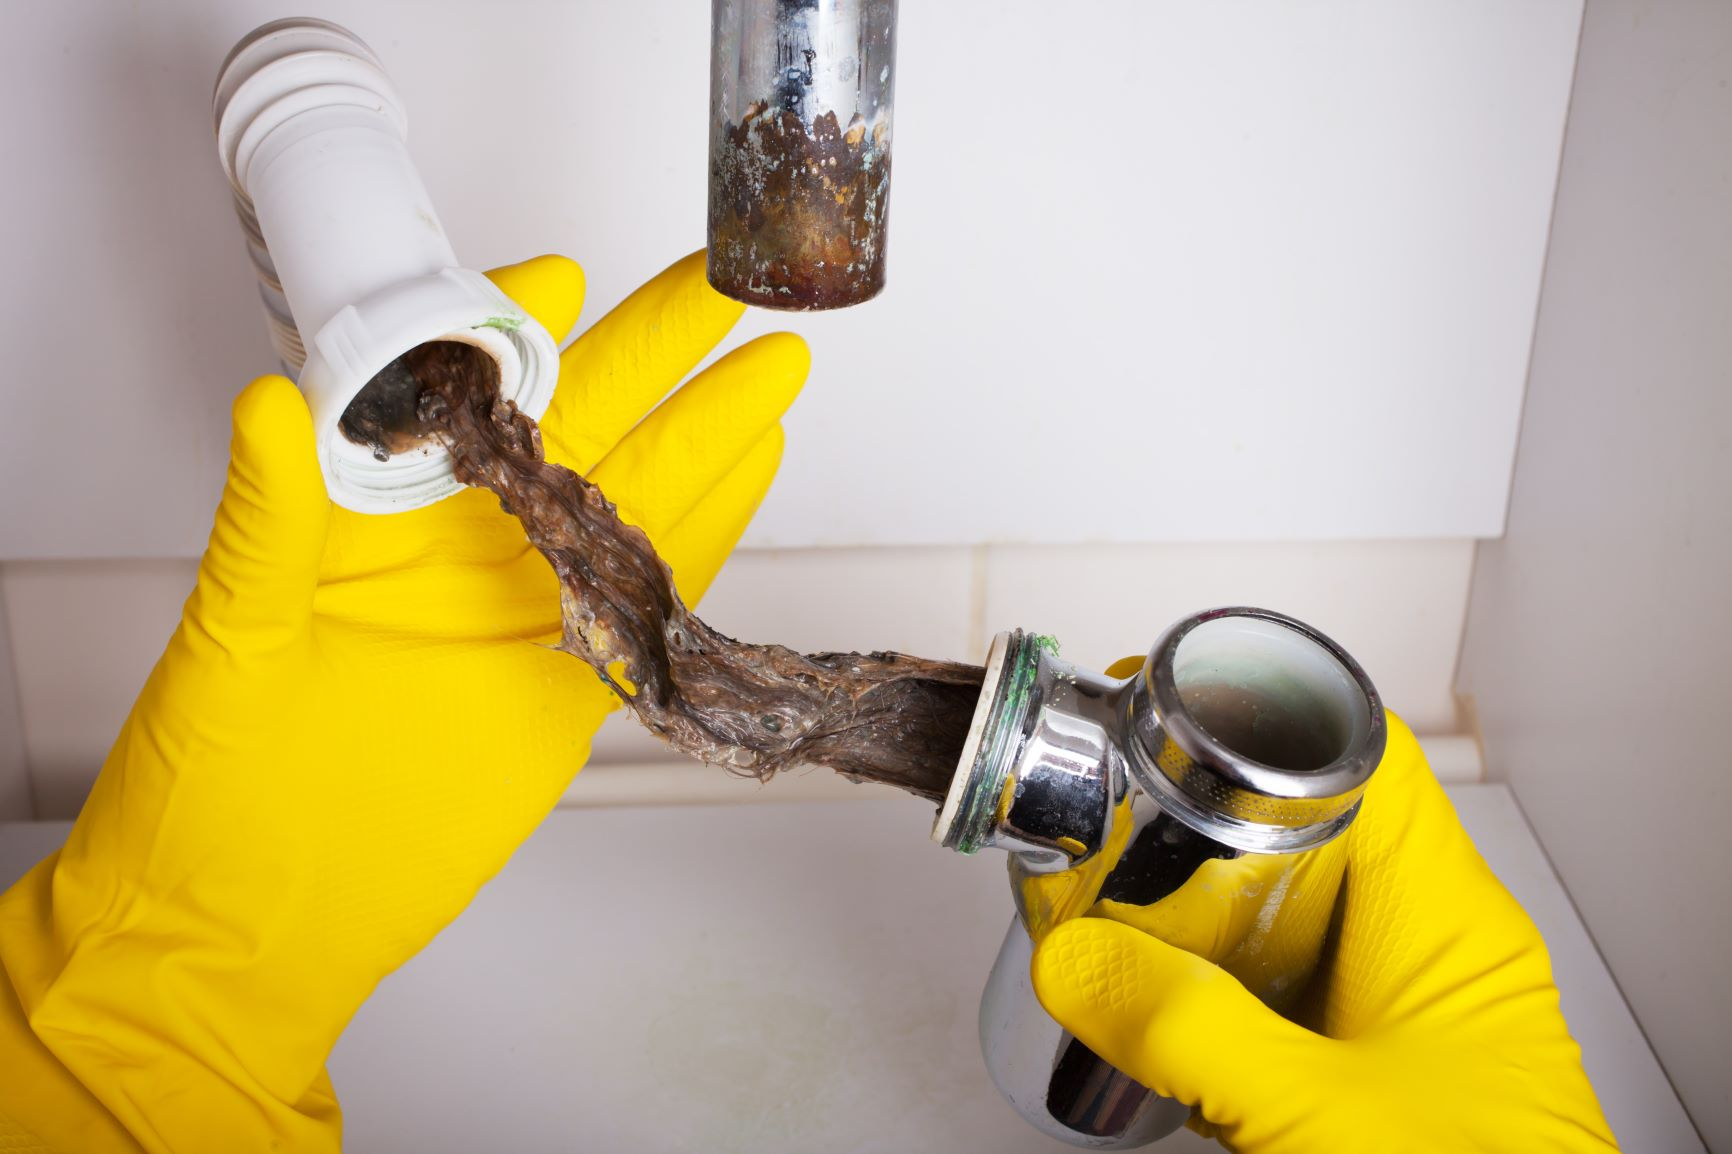 Man With Yellow Gloves Fixing a Clogged Pipe With Hydro Jetting